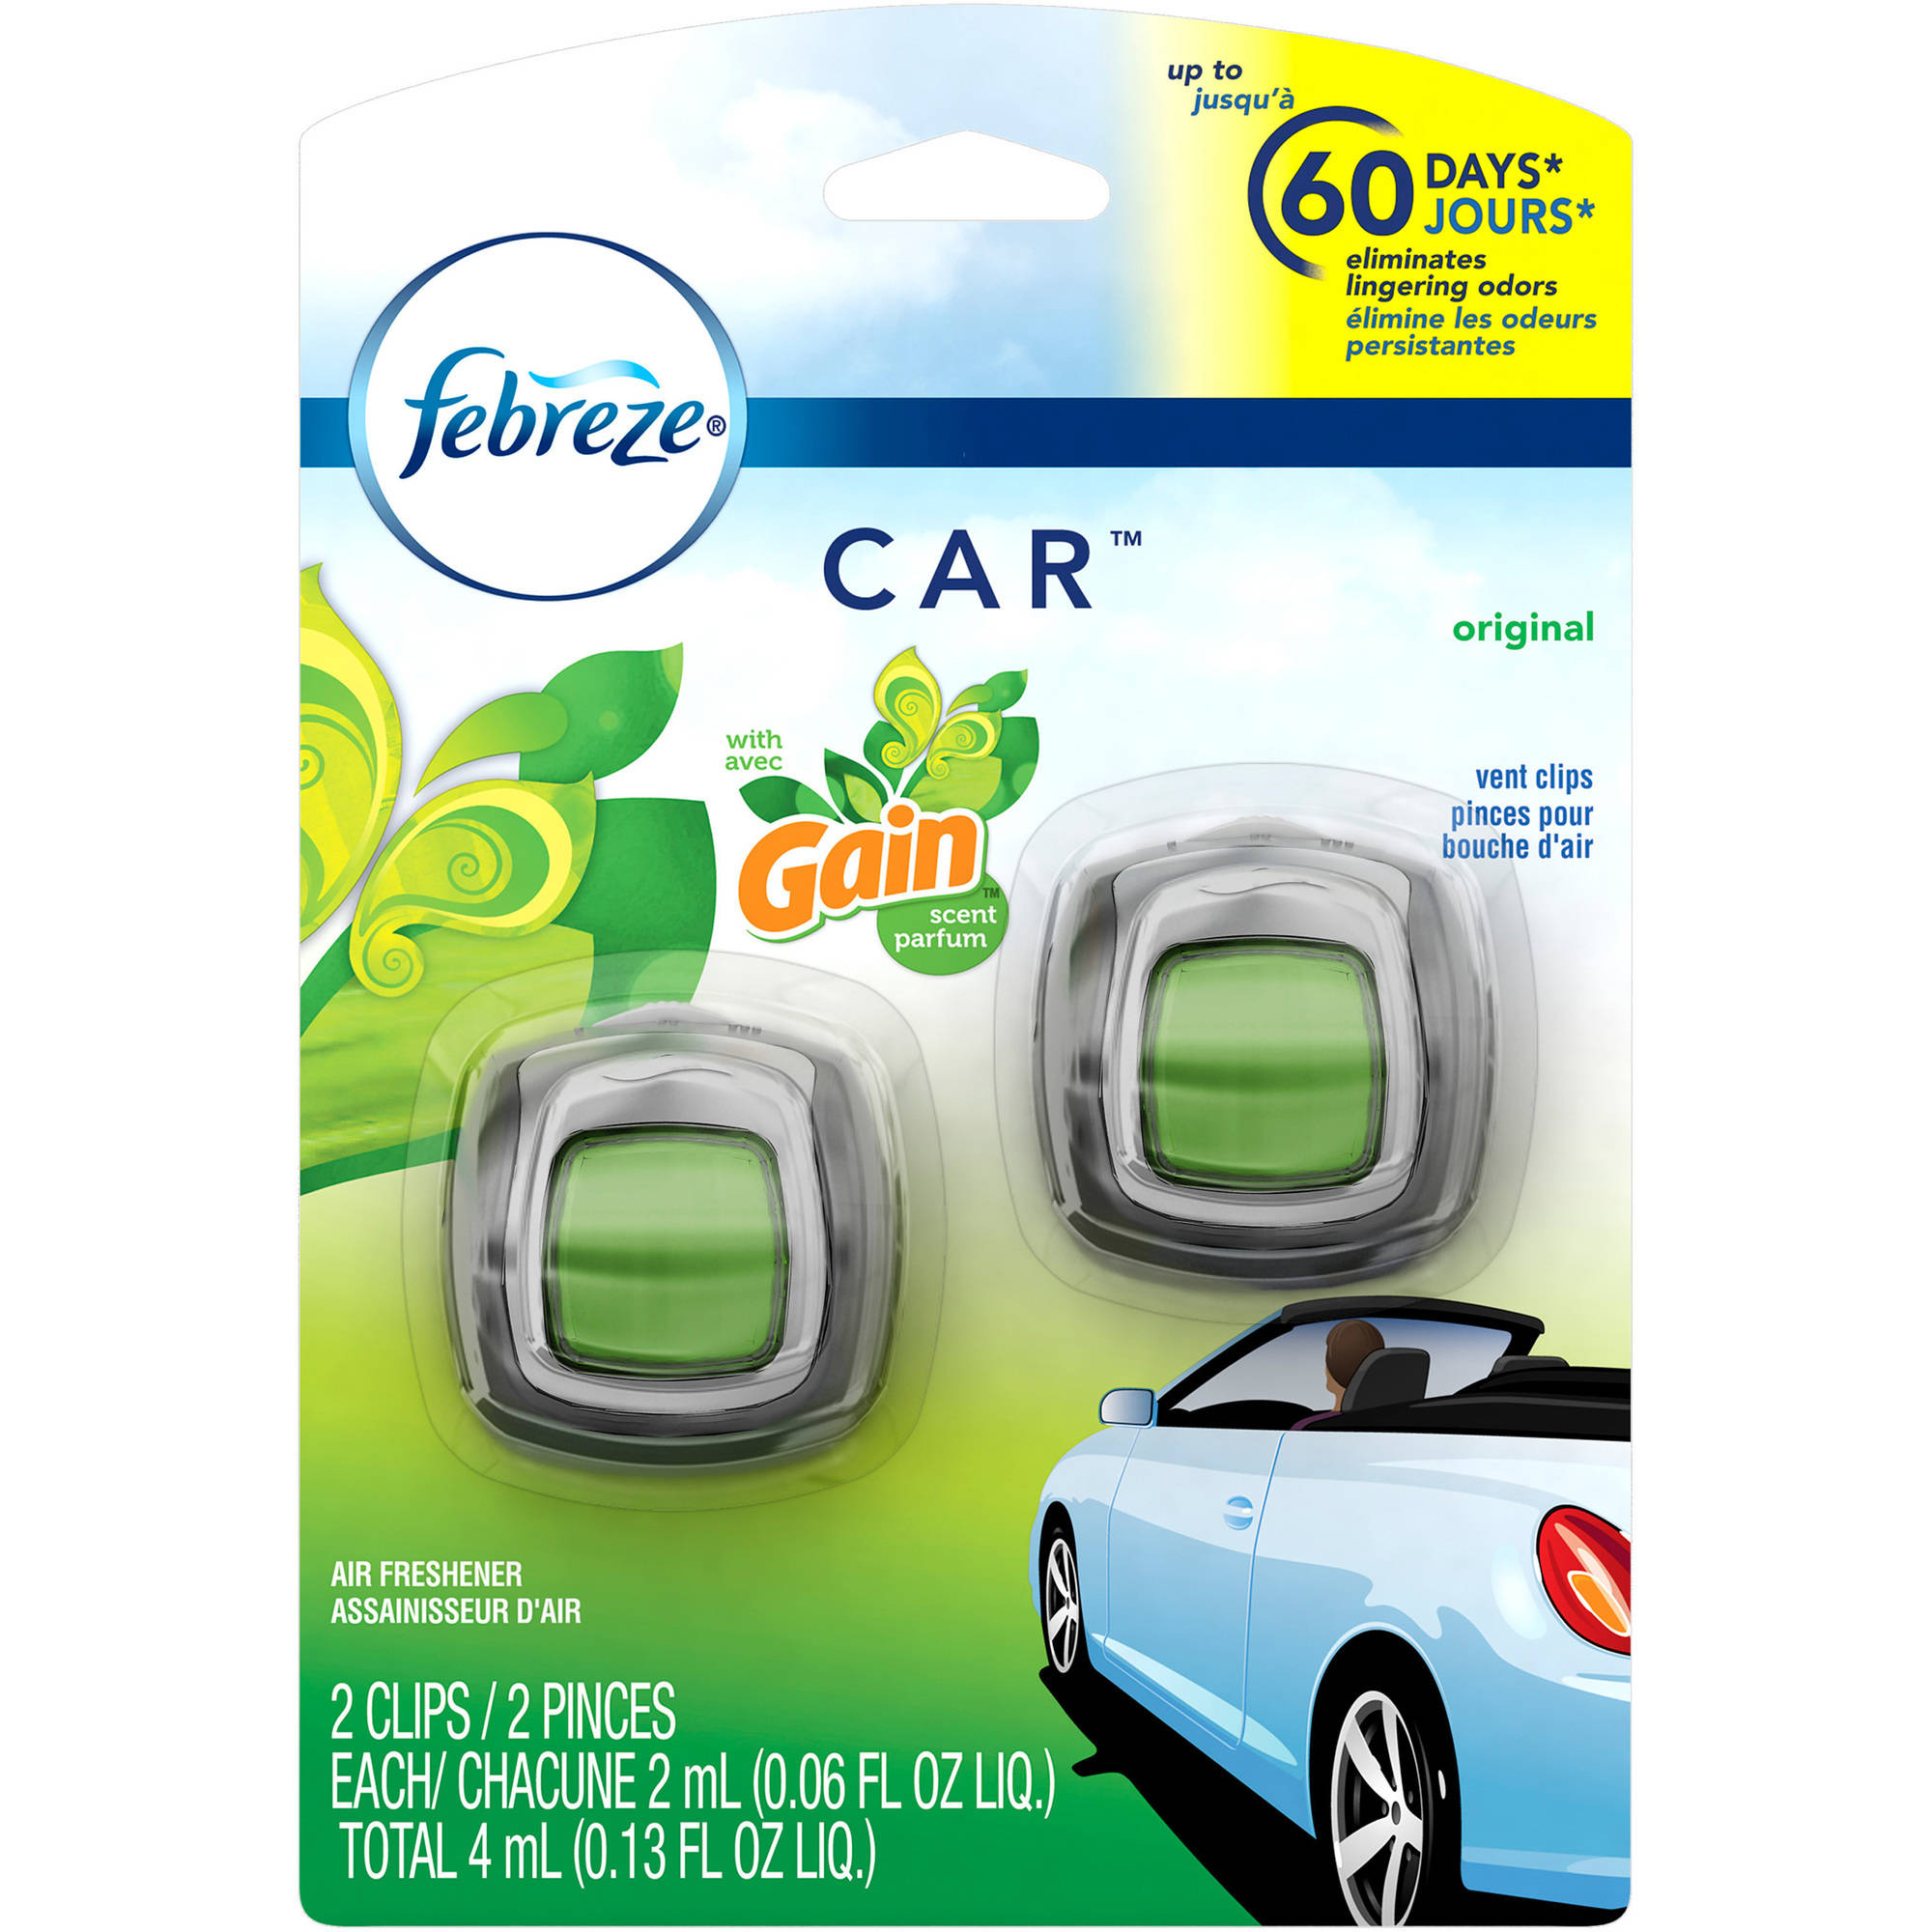 Febreze Car Vent Clips Gain Original Air Freshener, 0.06 oz, 2 count